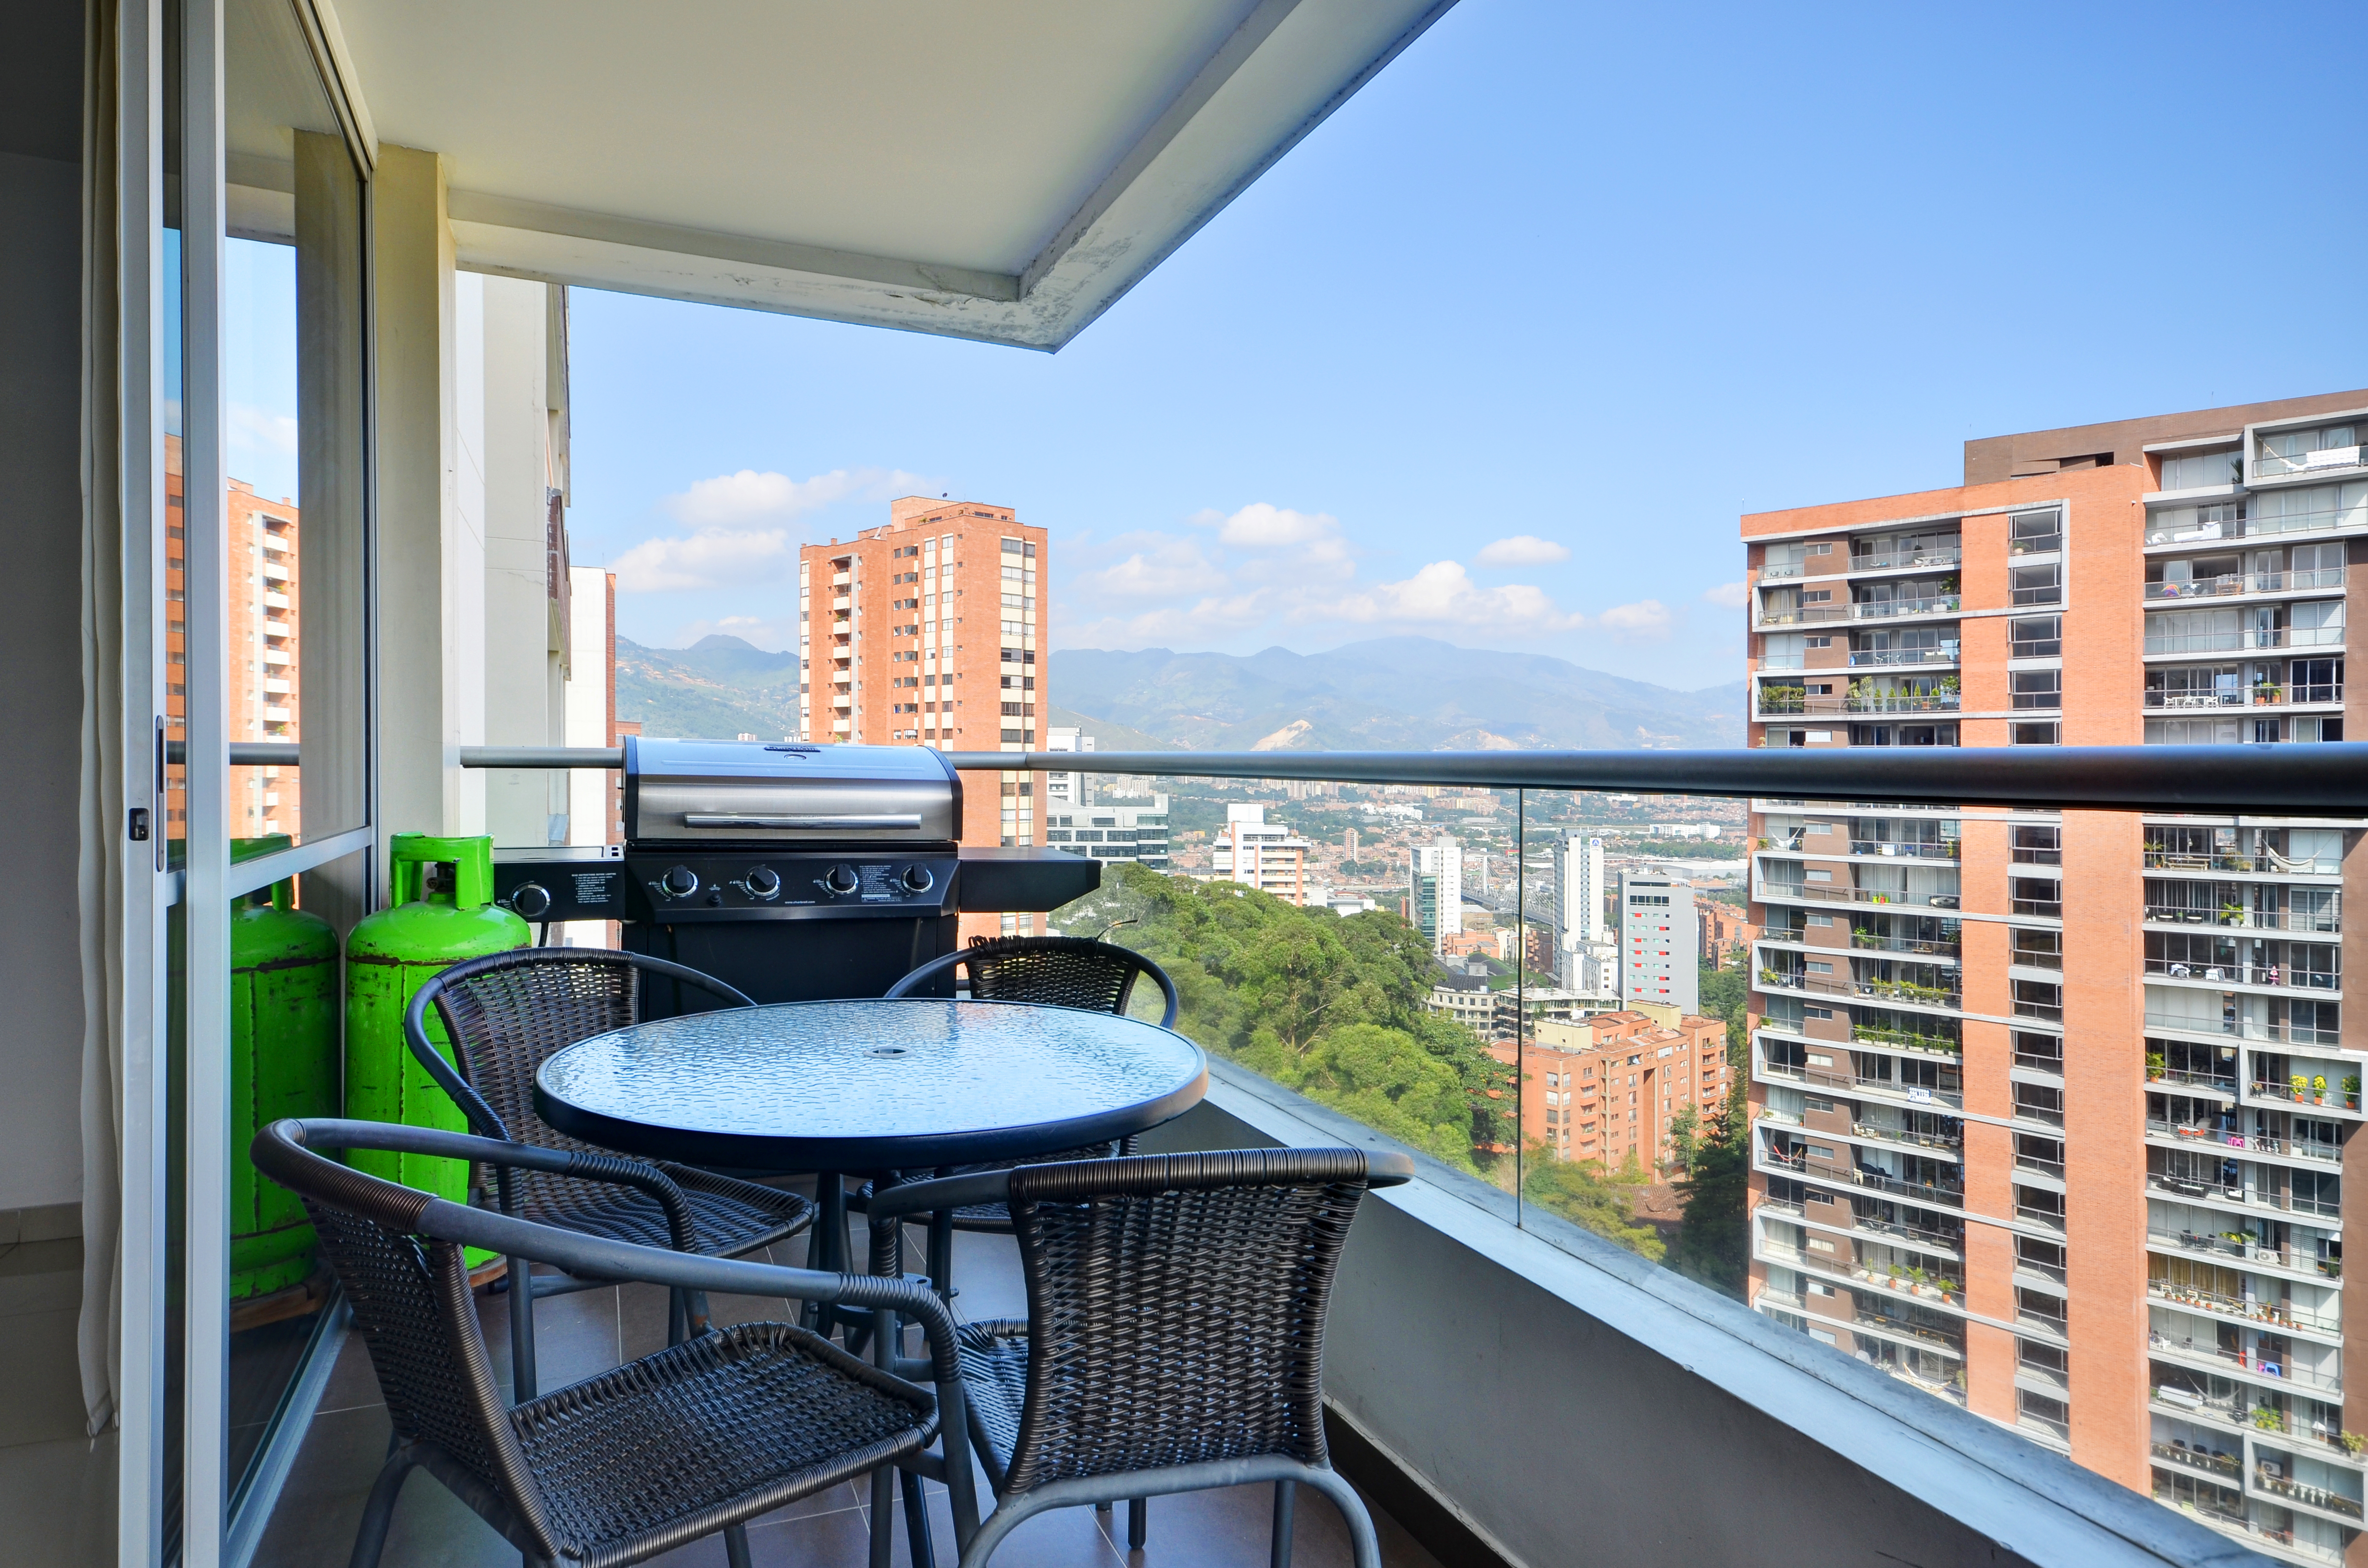 Property - image - CLASSIC APARTMENT NEAR SANTAFE MALL WITH GORGEOUS CITY VIEWS